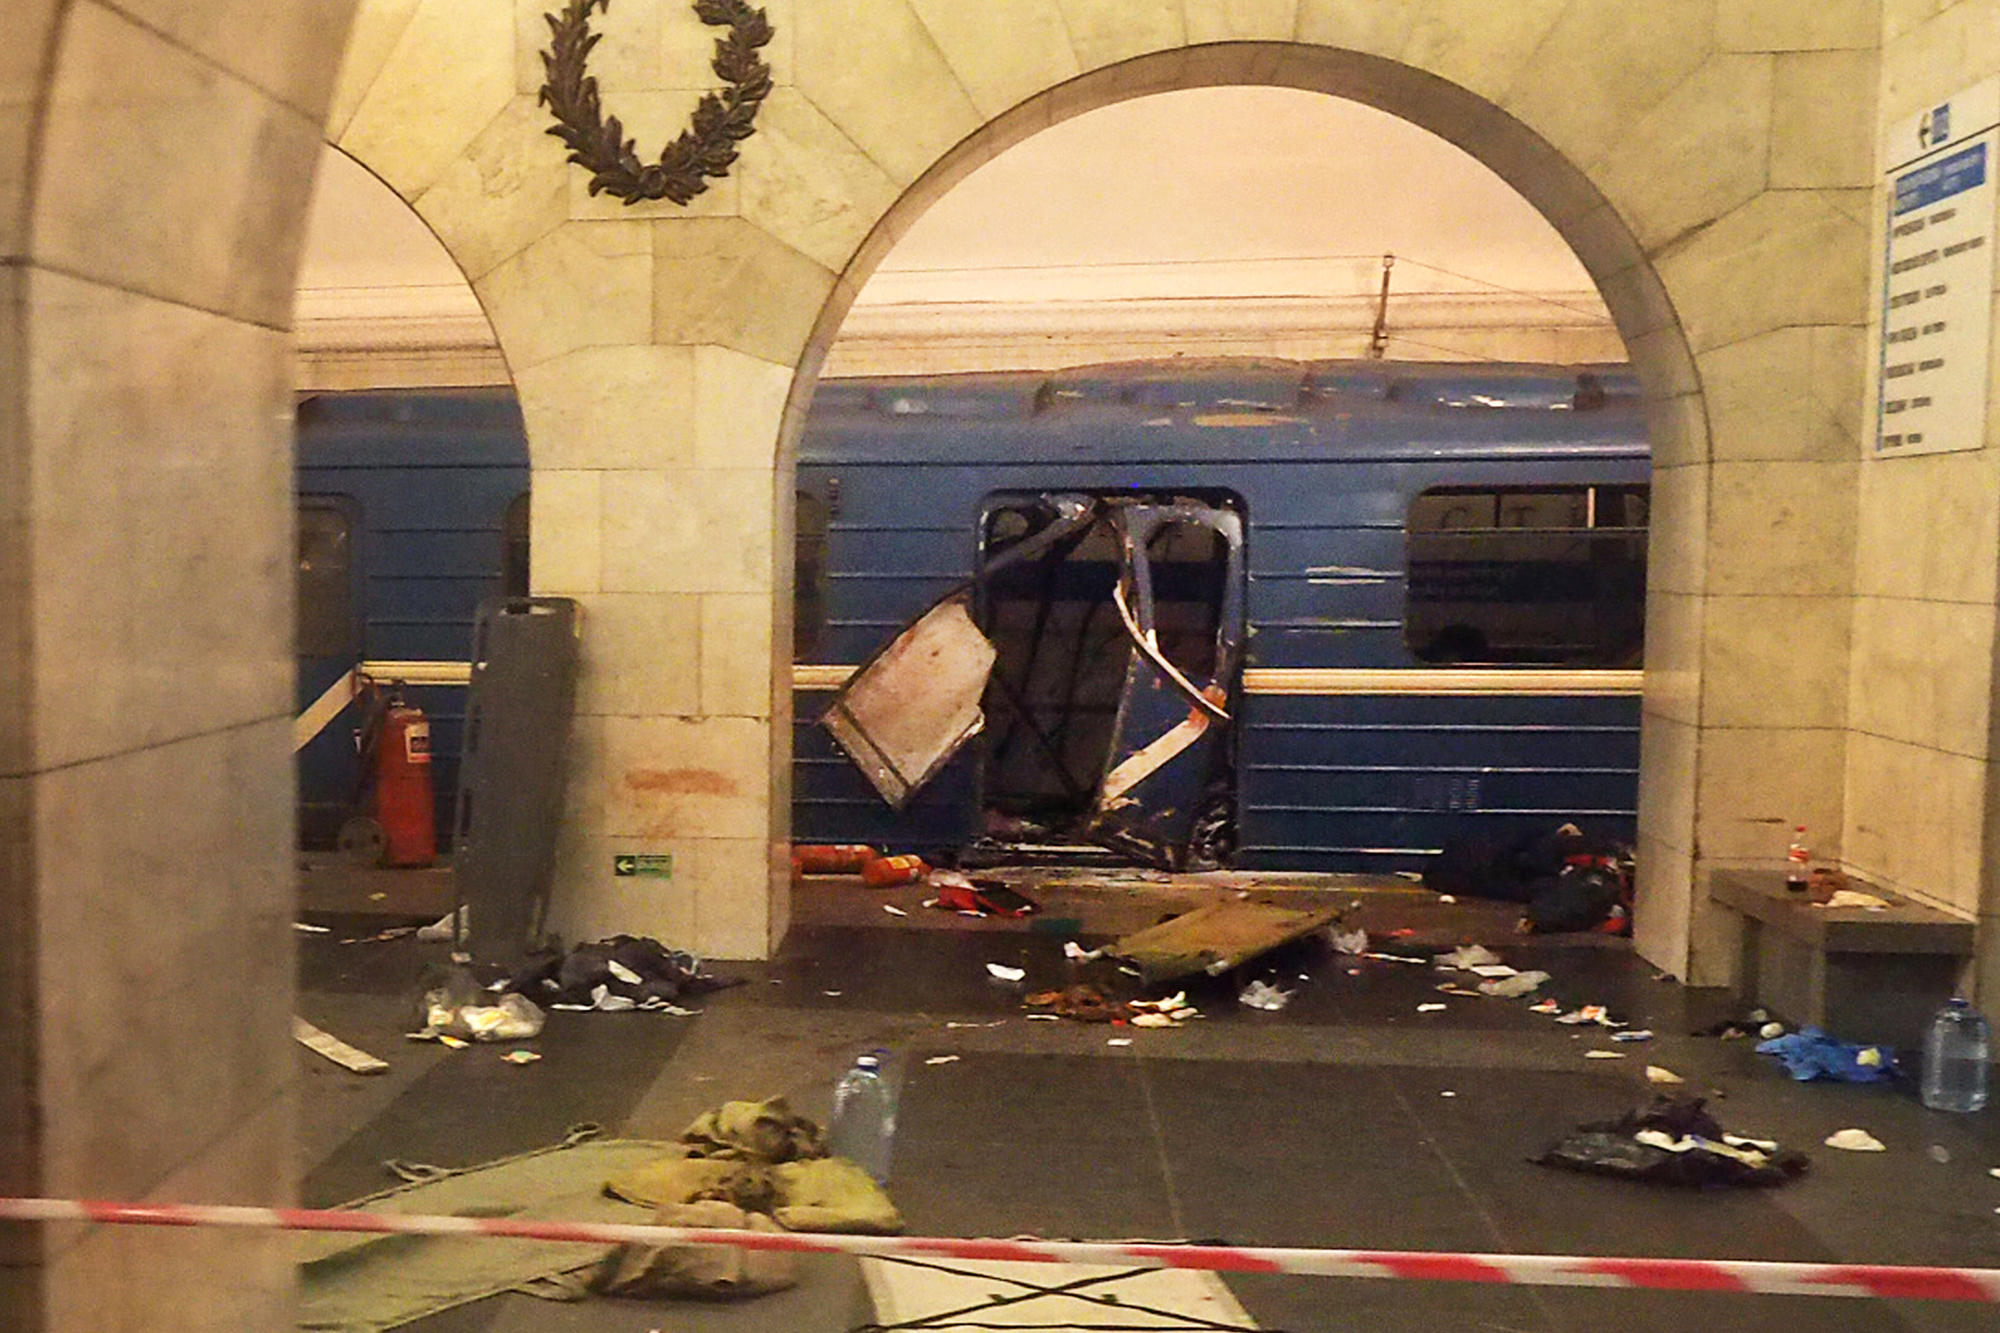 A damaged train carriage from a blast at Technological Institute metro station in St. Petersburg, Russia, on April 3, 2017.